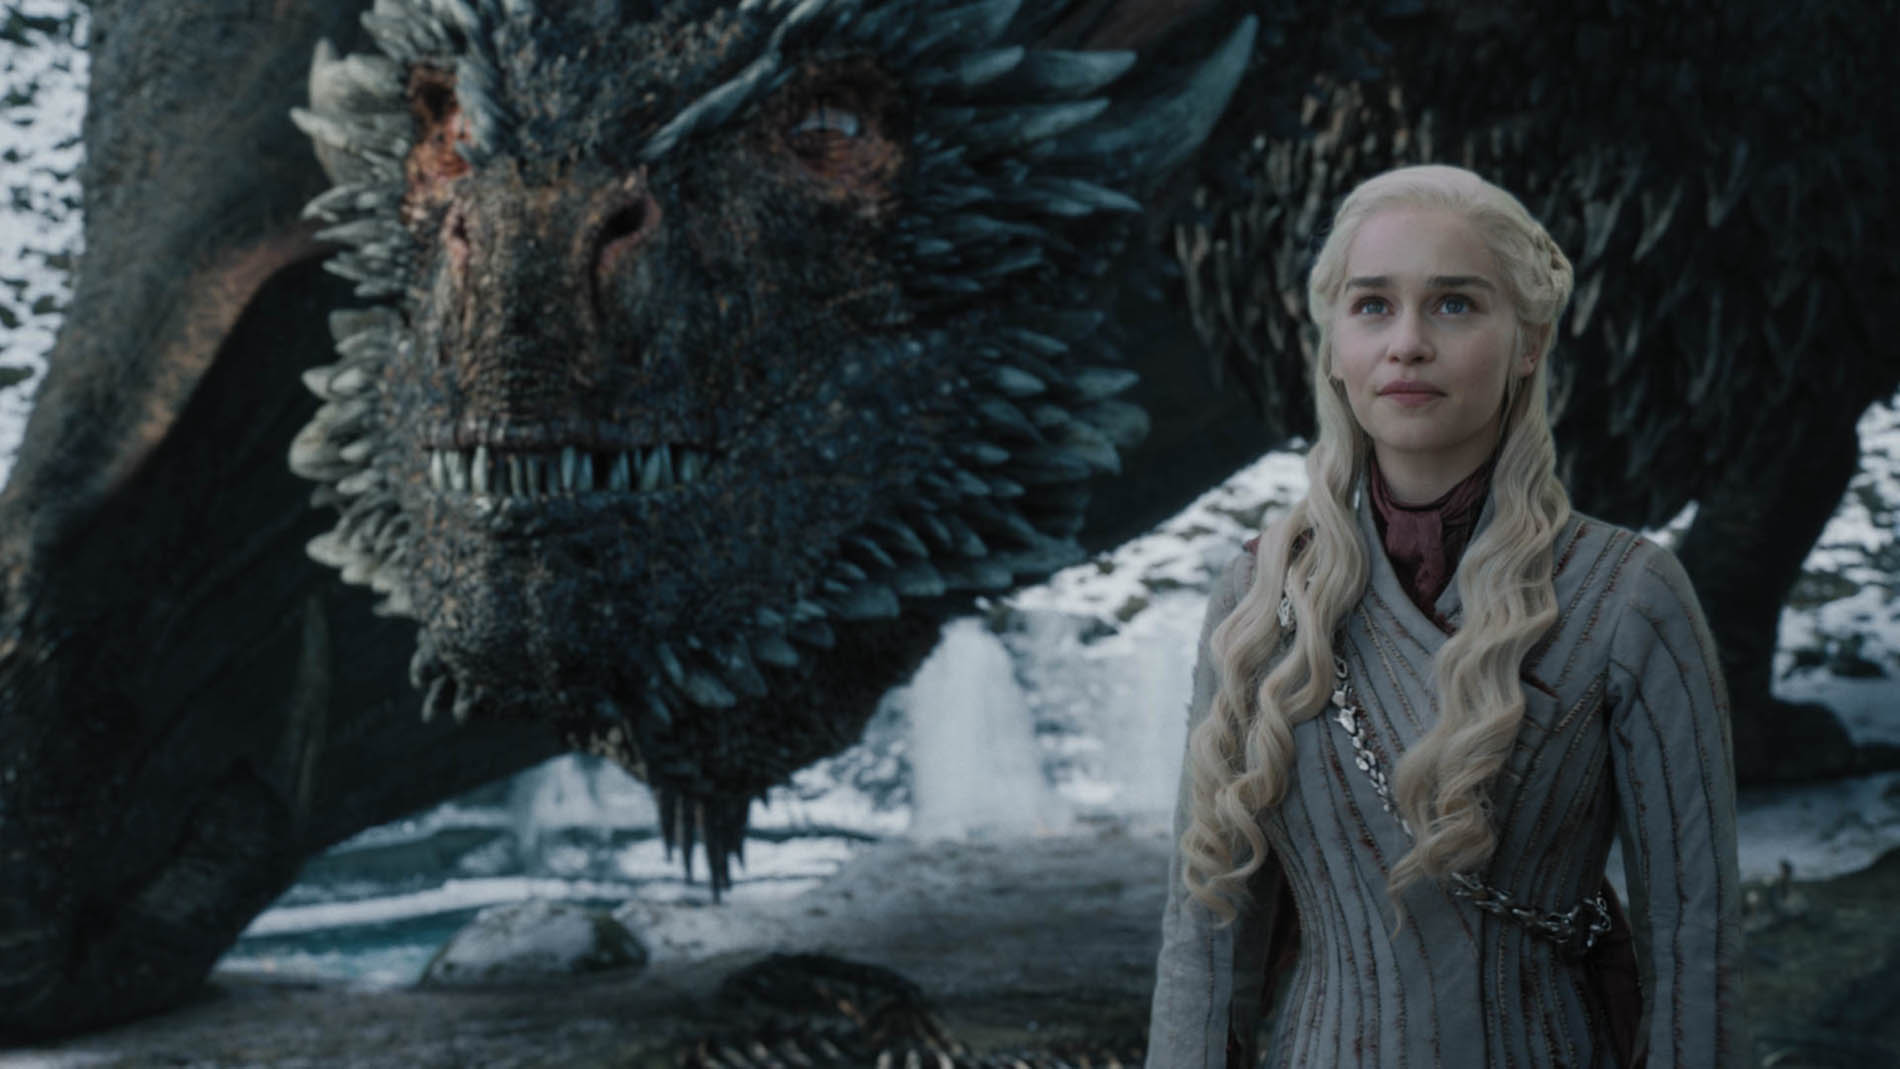 CONTEST: Win GAME OF THRONES Season 8 on Blu-ray!